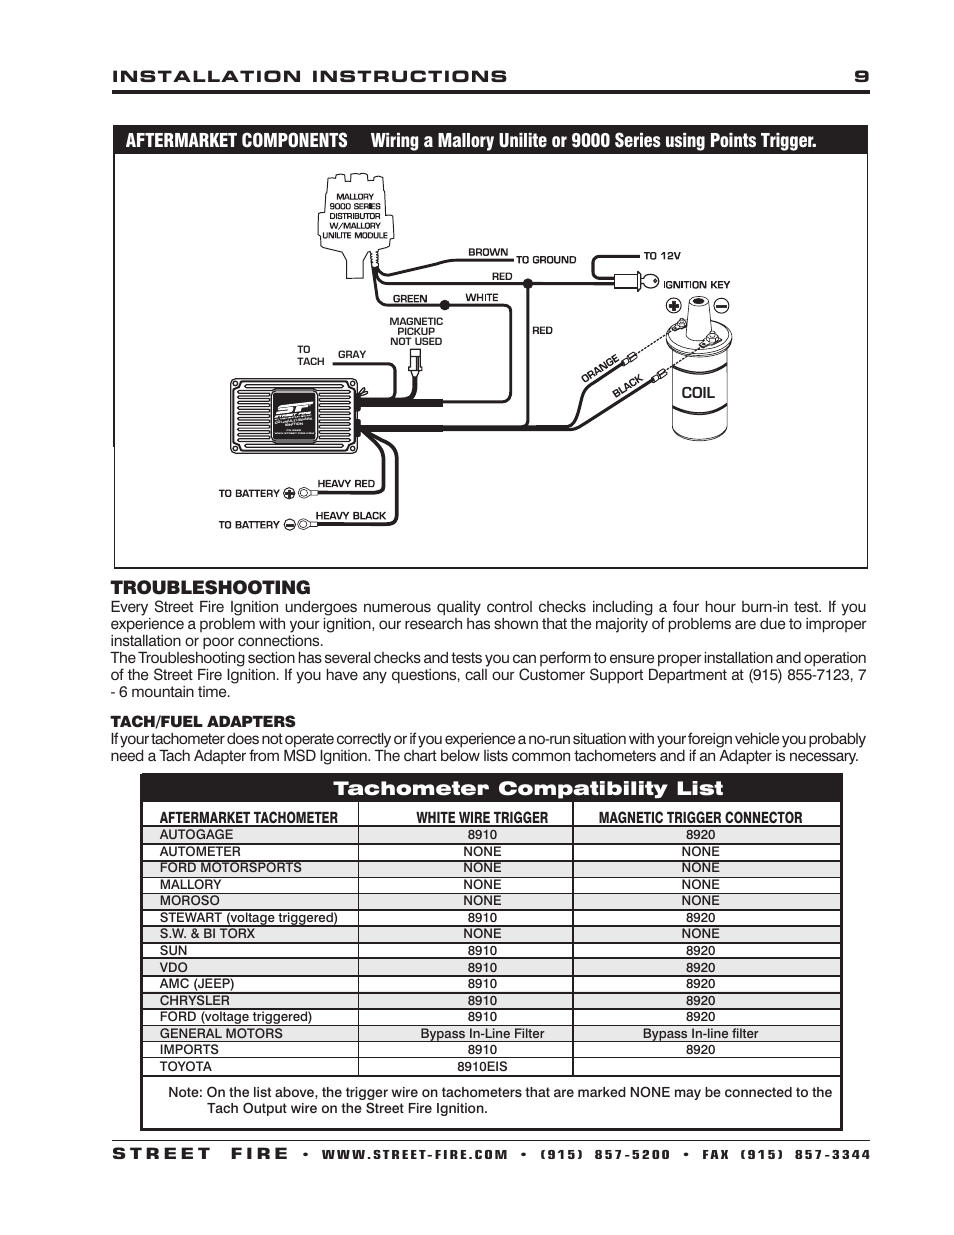 Unilite Wiring Diagram Avg Wiring Diagram Bakdesignsco – Jeep 6 Cylinder Points Ignition Wiring Diagram